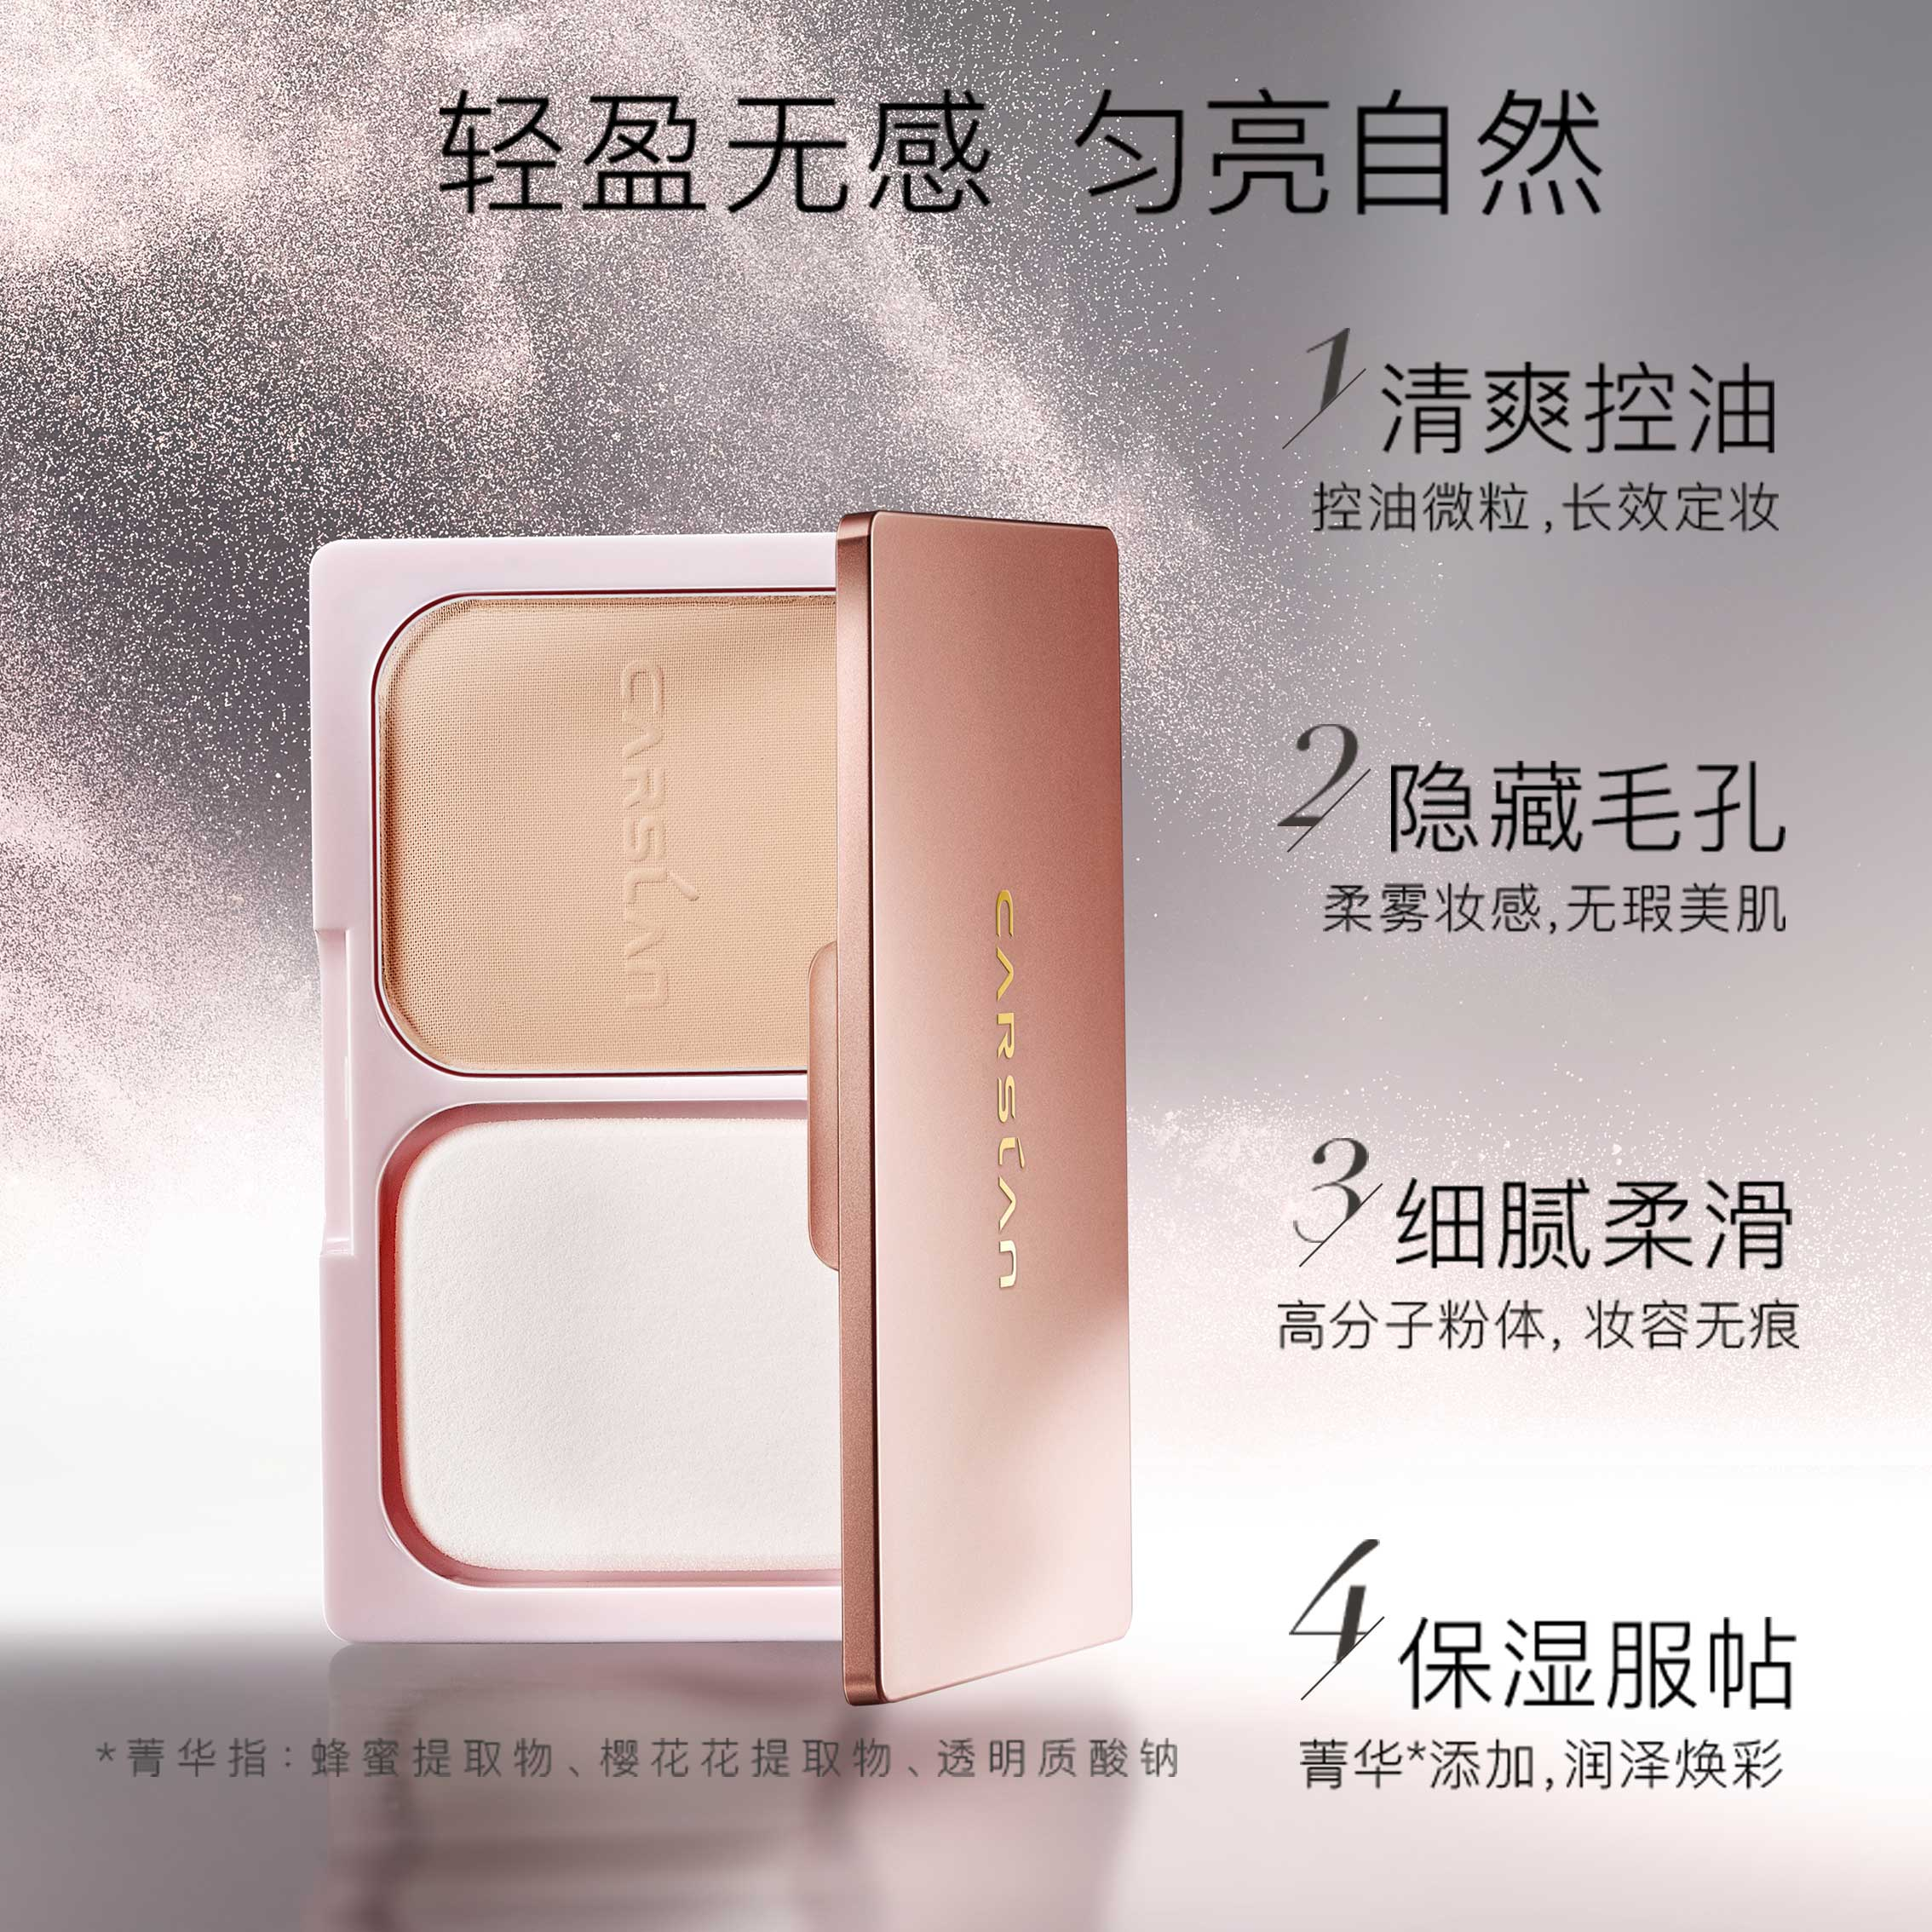 Carslan powder Concealer makeup powder durable oil control waterproofing Li Jiaqi recommends waterproof, anti sweat, dry powder.